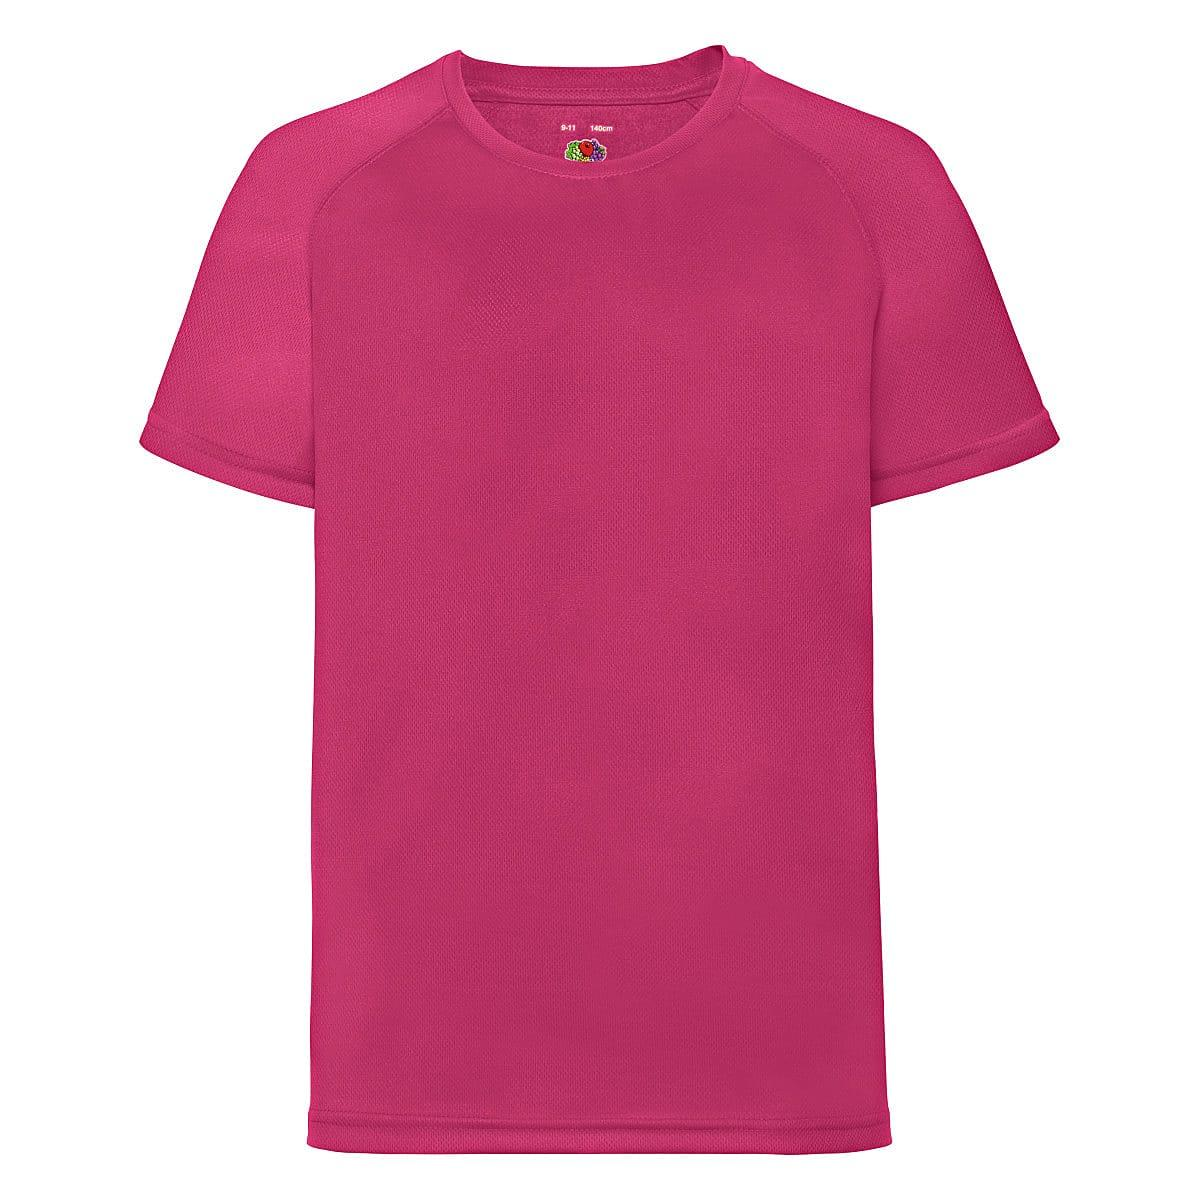 Fruit Of The Loom Childrens Kids Performance T-Shirt in Fuchsia (Product Code: 61013)